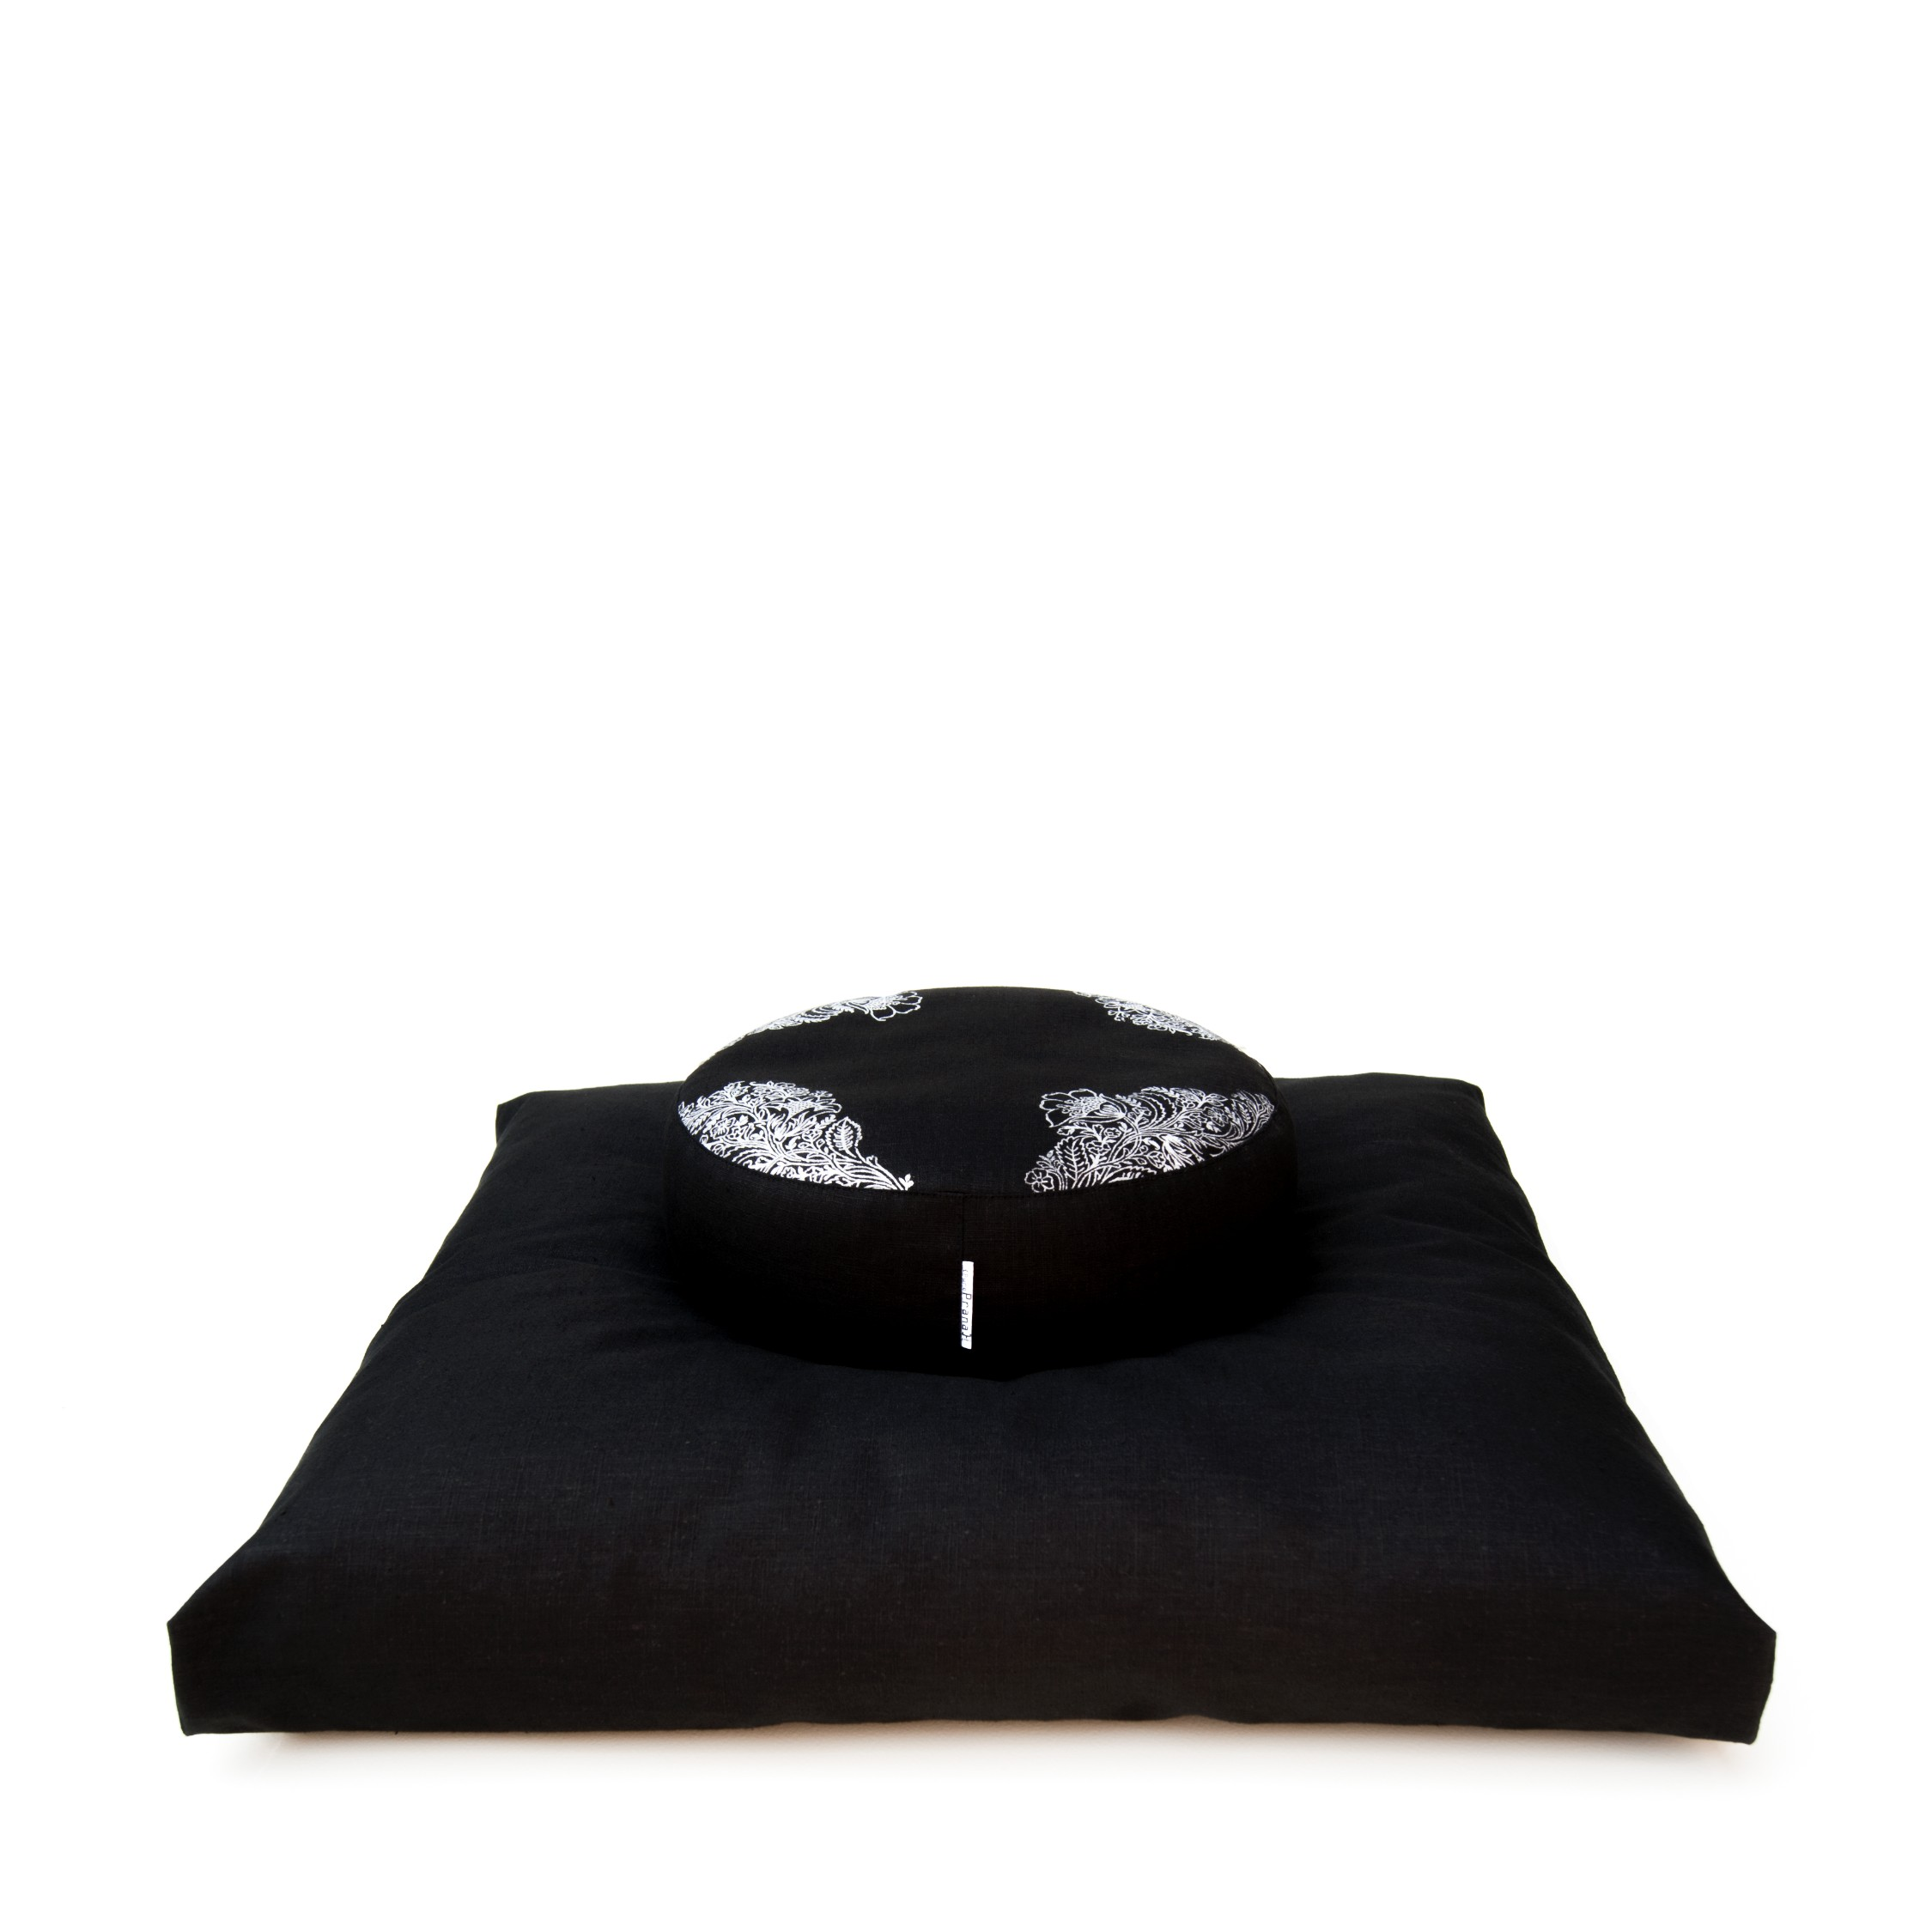 Meditation set in black non toxic flax linen, filled with anti allergic materials.